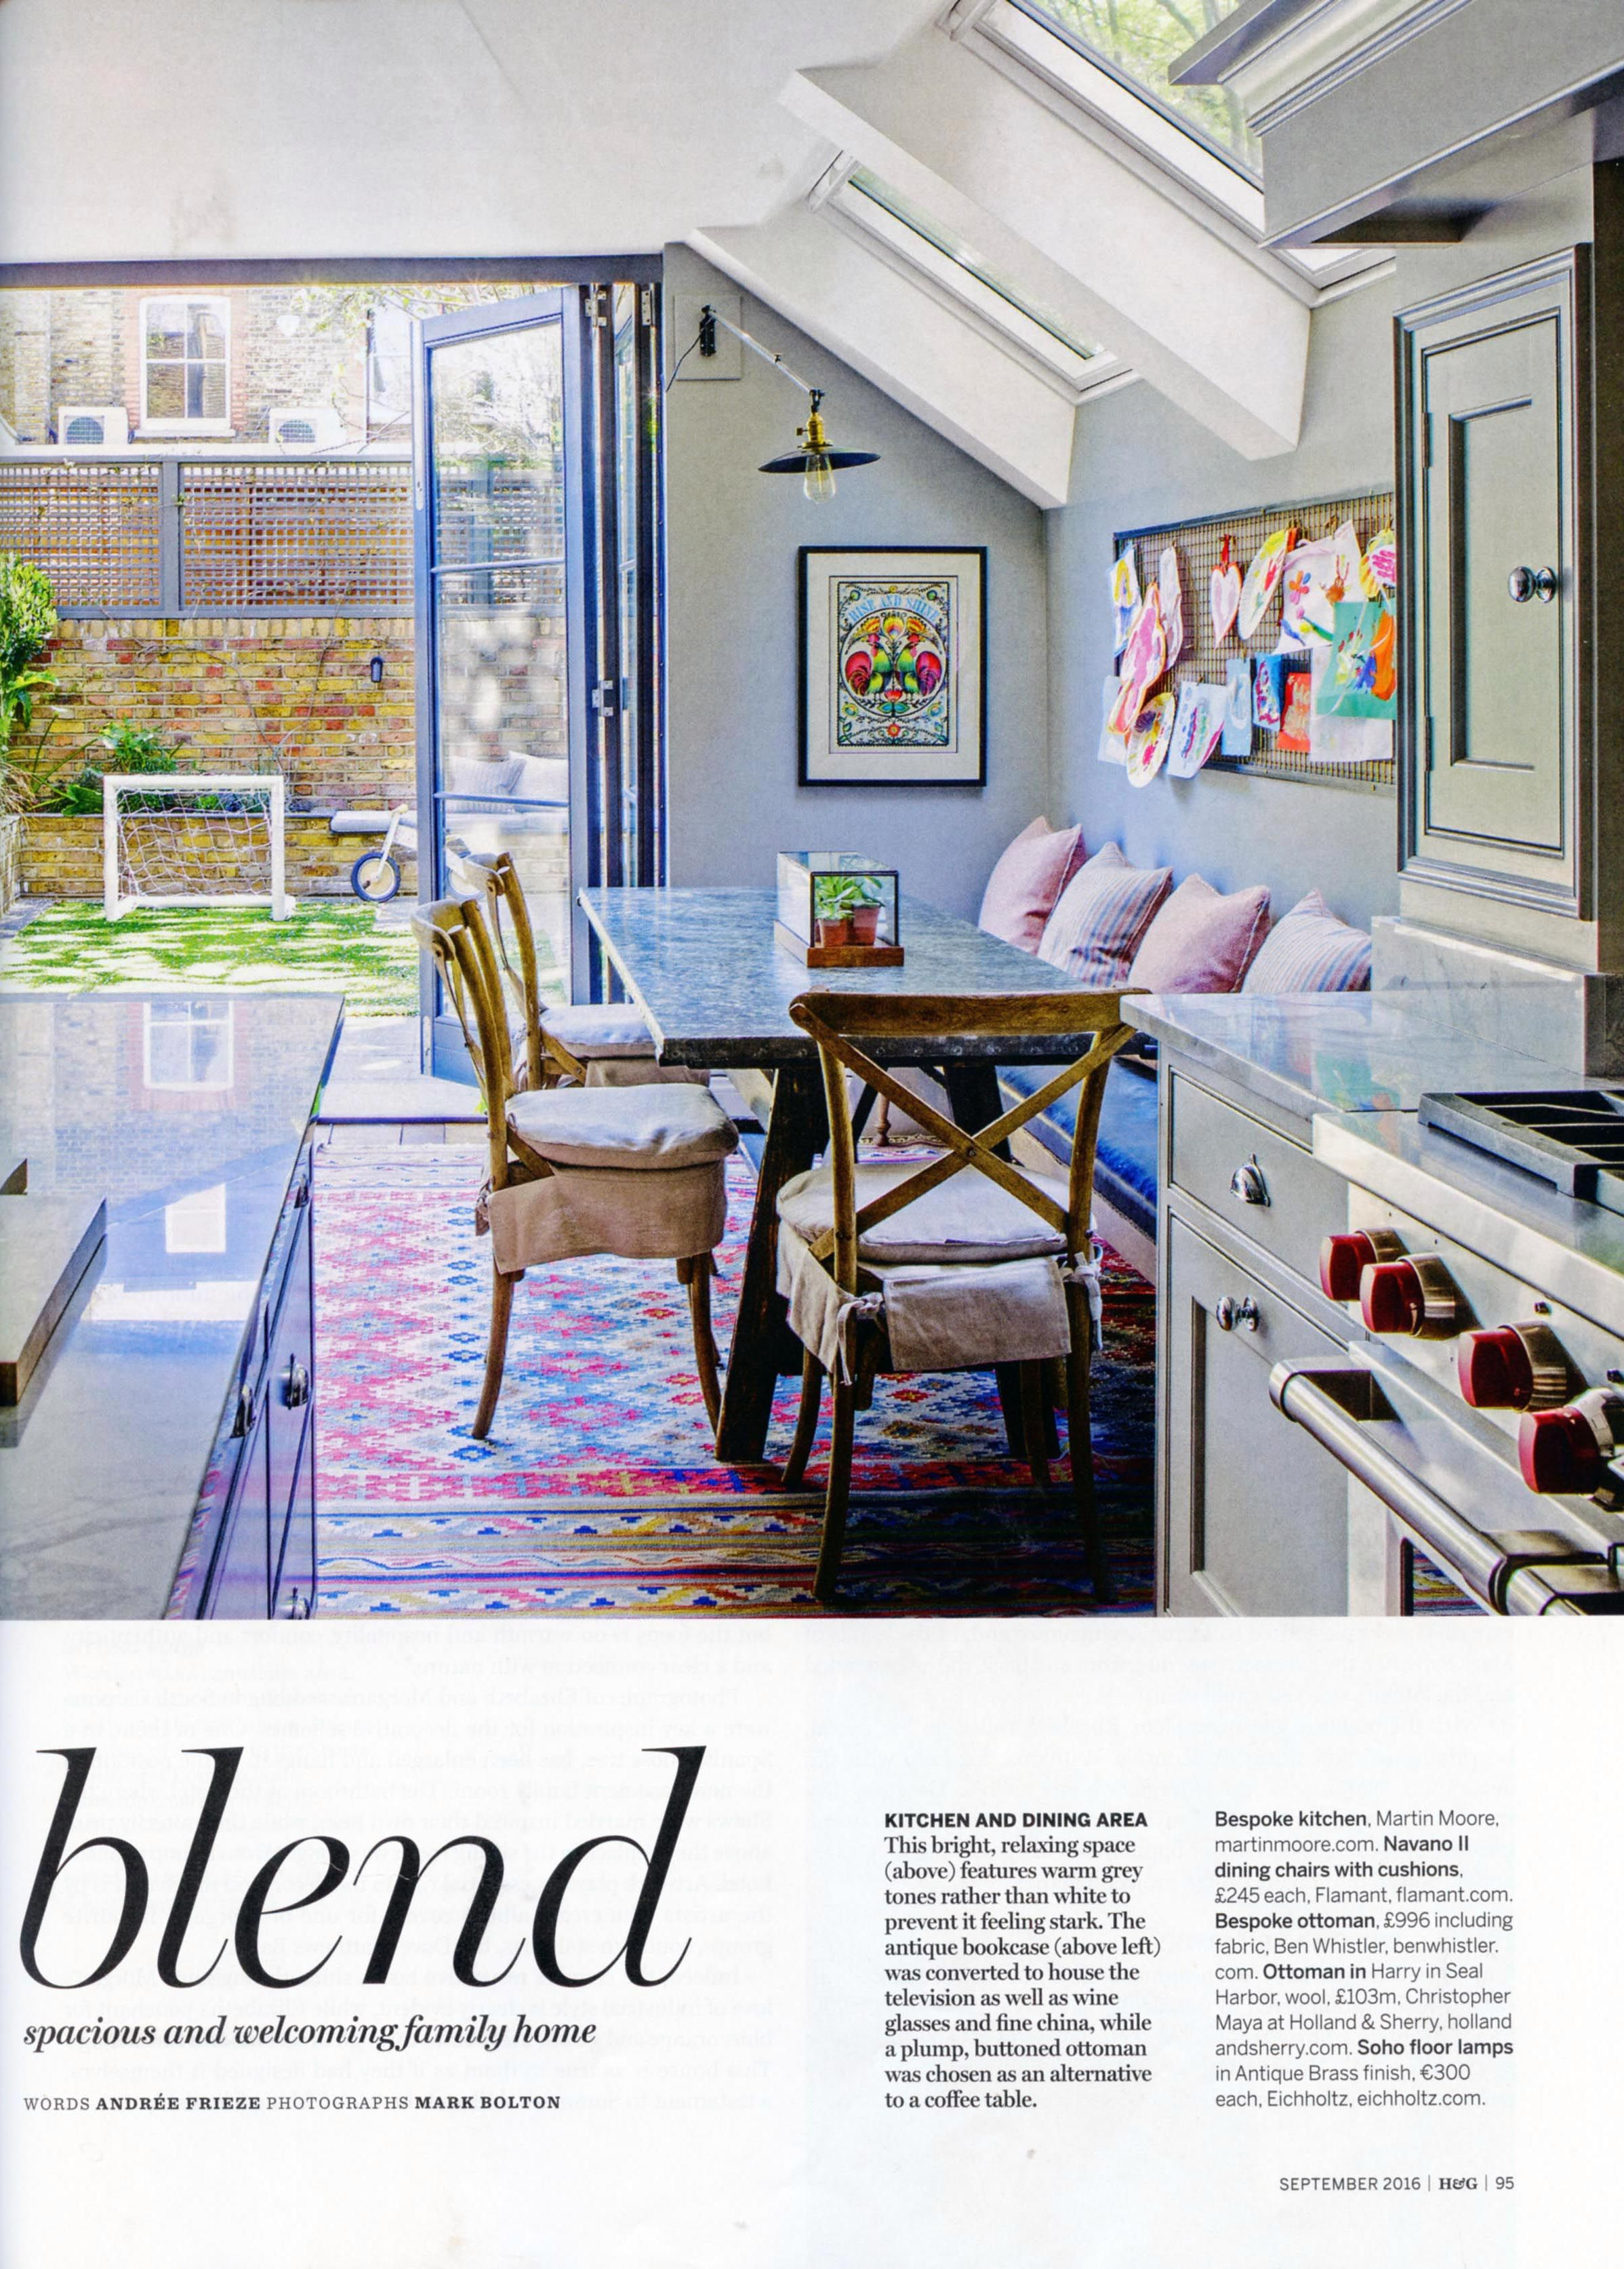 Incredible bespoke kitchen from Martin Moore. http://www.martinmoore.com/ Homes & Gardens September 2016